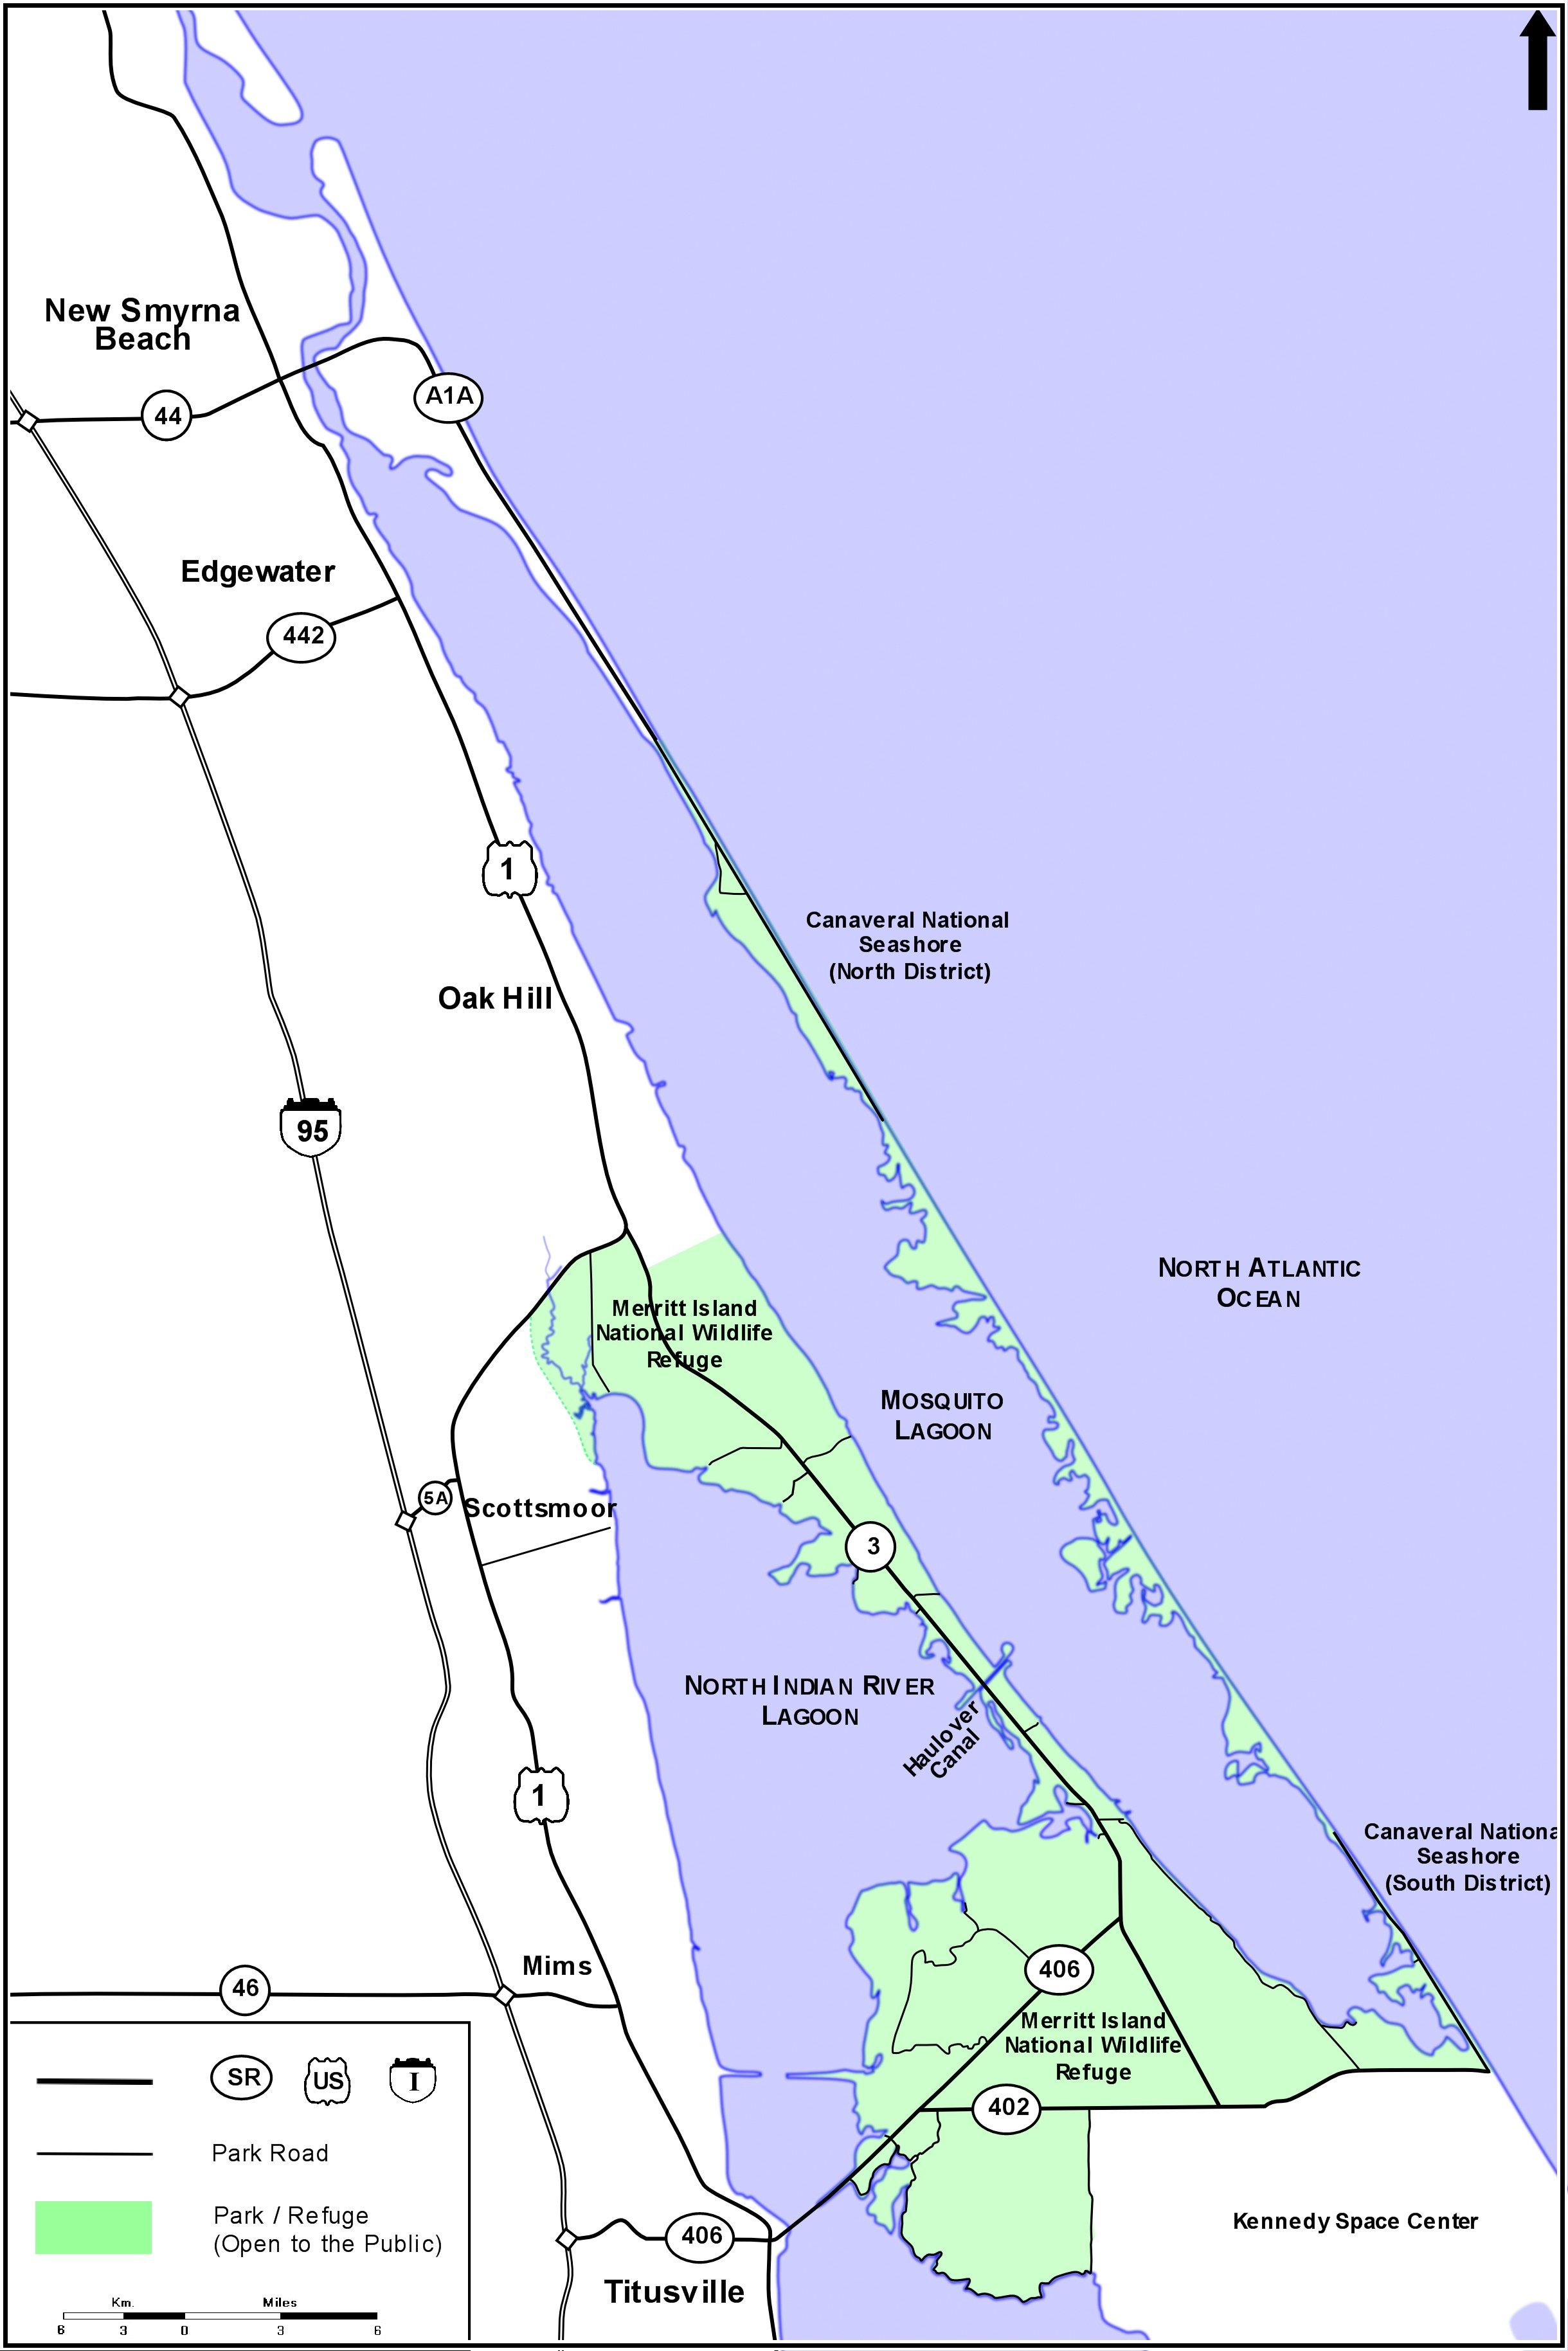 Mosquito lagoon and north indian river lagoon florida for Mosquito lagoon fishing